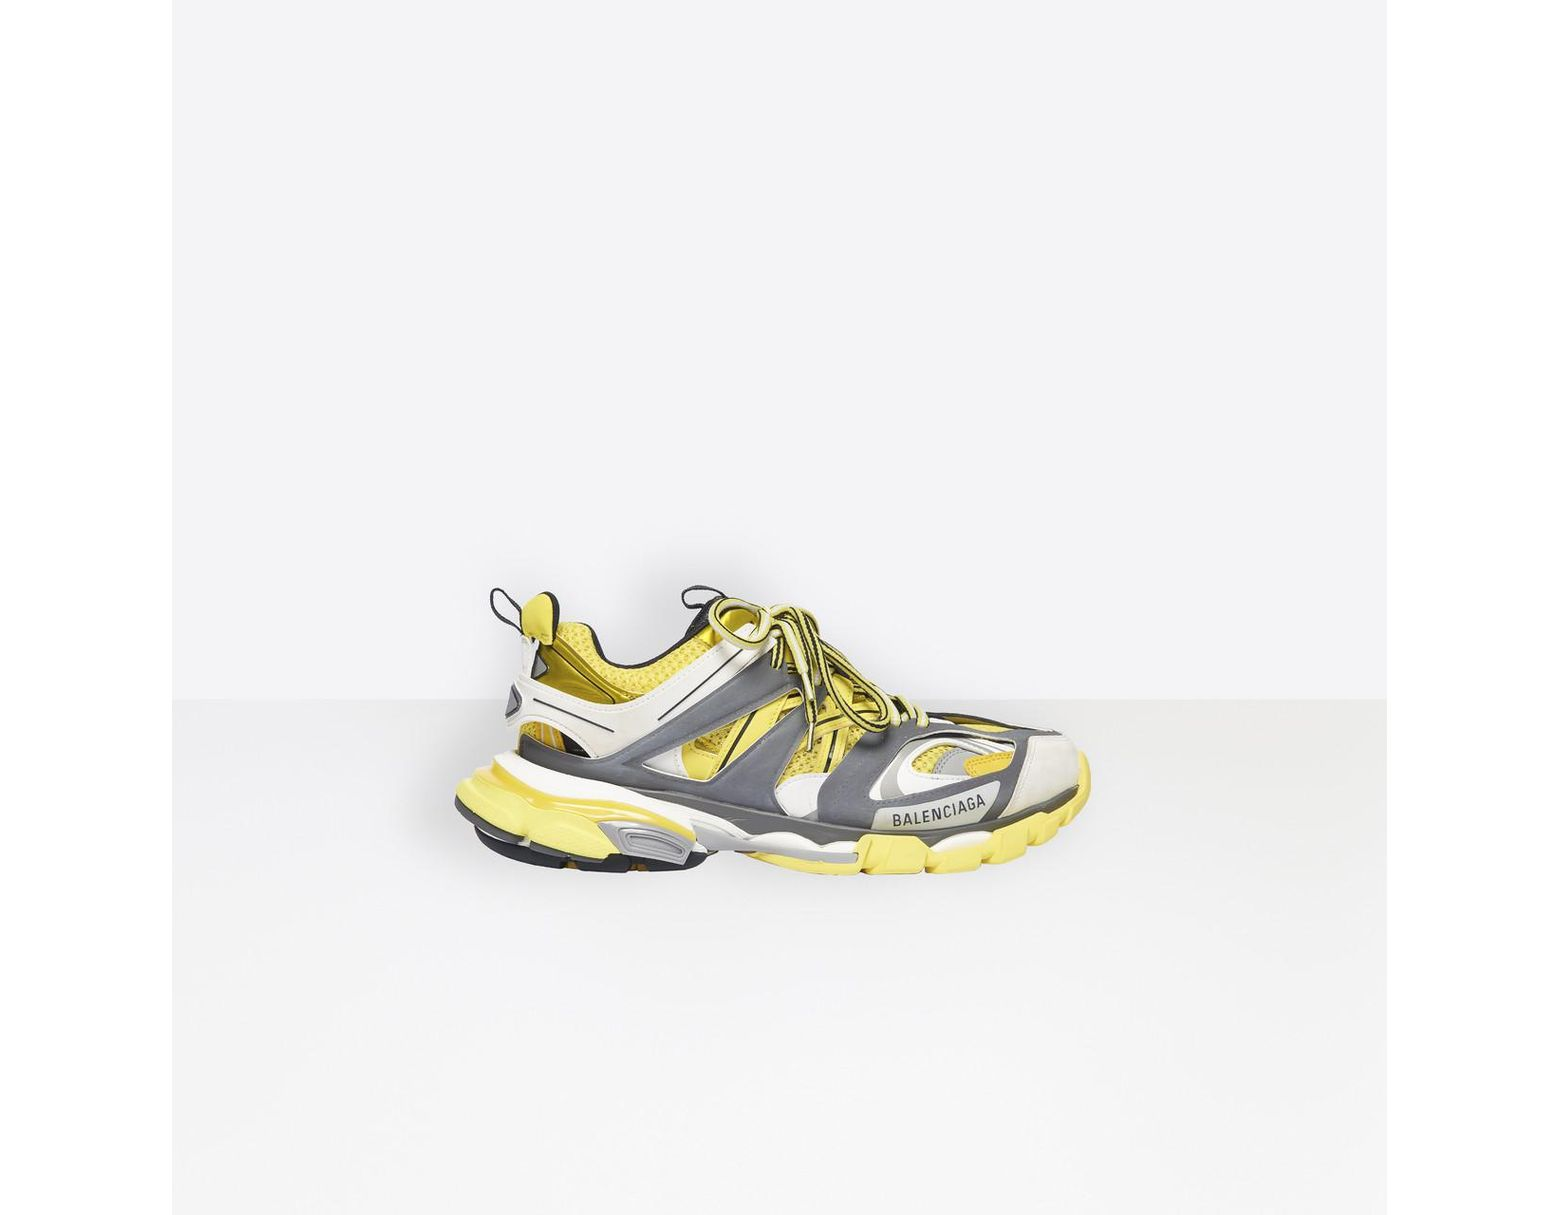 Trainers Lyst Balenciaga Lyst Track Trainers Balenciaga Balenciaga Track Track Balenciaga Lyst Trainers Track Trainers hsxCQdtr